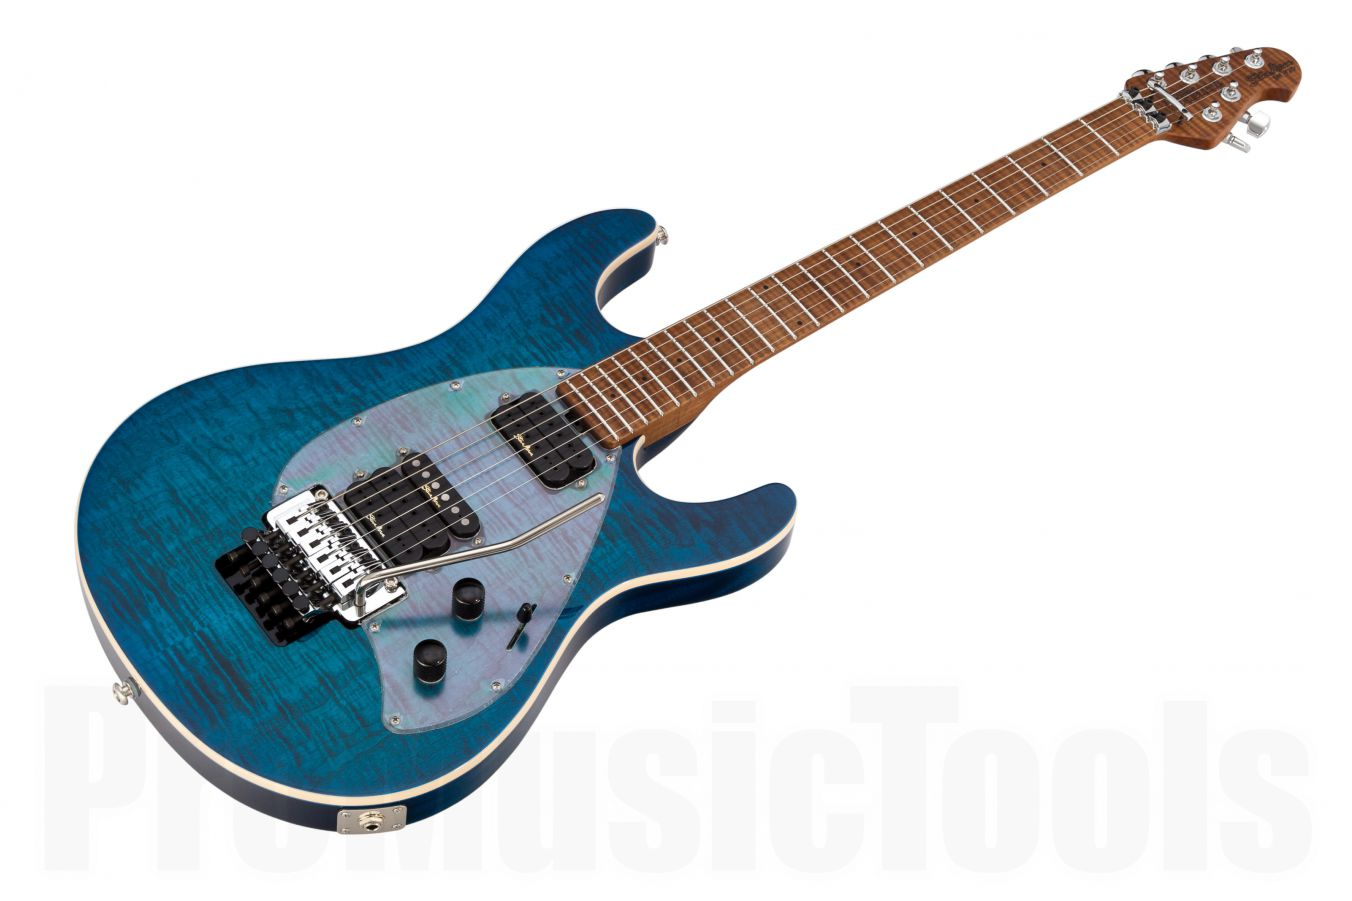 Music Man USA Steve Morse Y2D FR NB - PDN Neptune Blue Roasted Neck Limited Edition QT MN PV